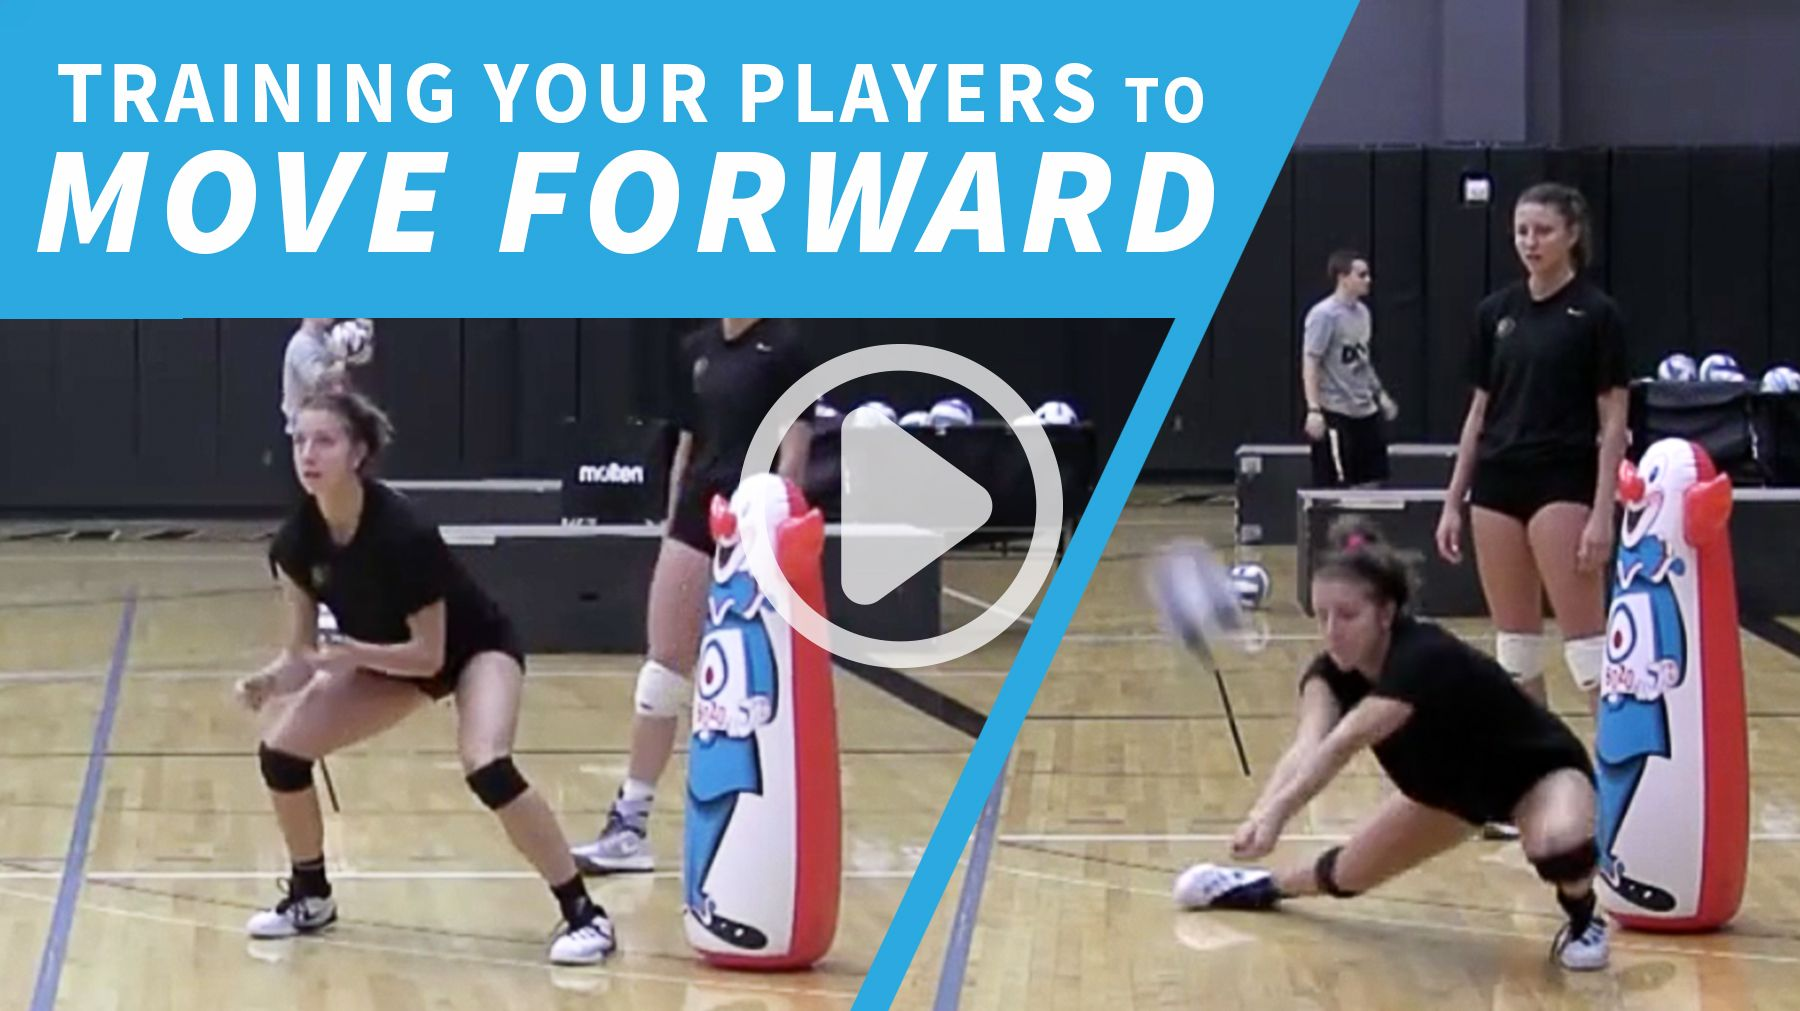 Training Players To Finish Forward Volleyball Drills Volleyball Skills Volleyball Tryouts